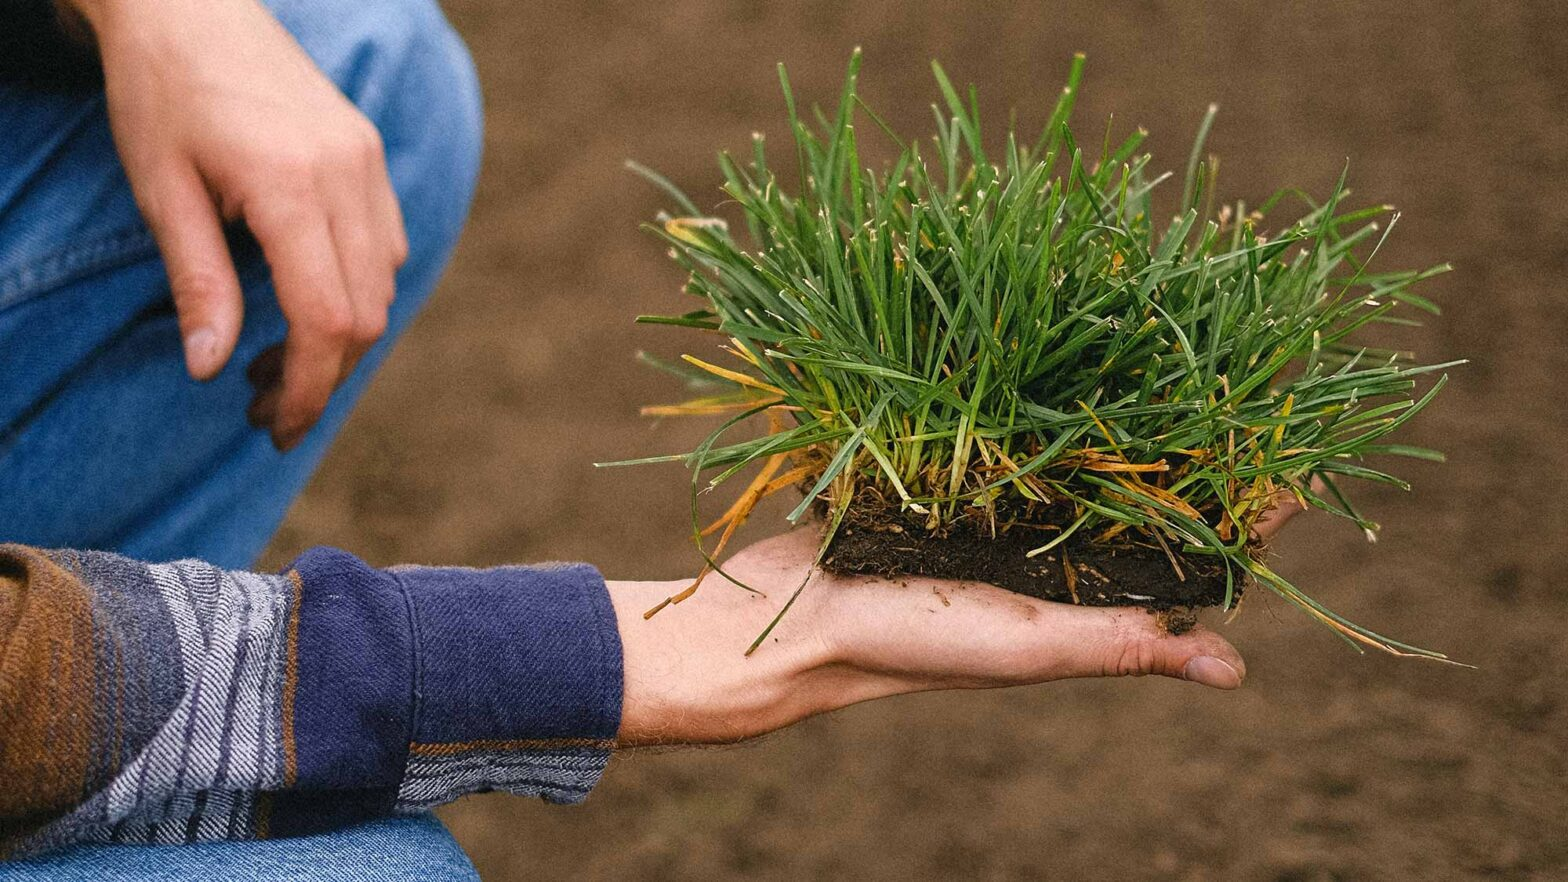 The 5 Most Popular Types Of Lawn Seed